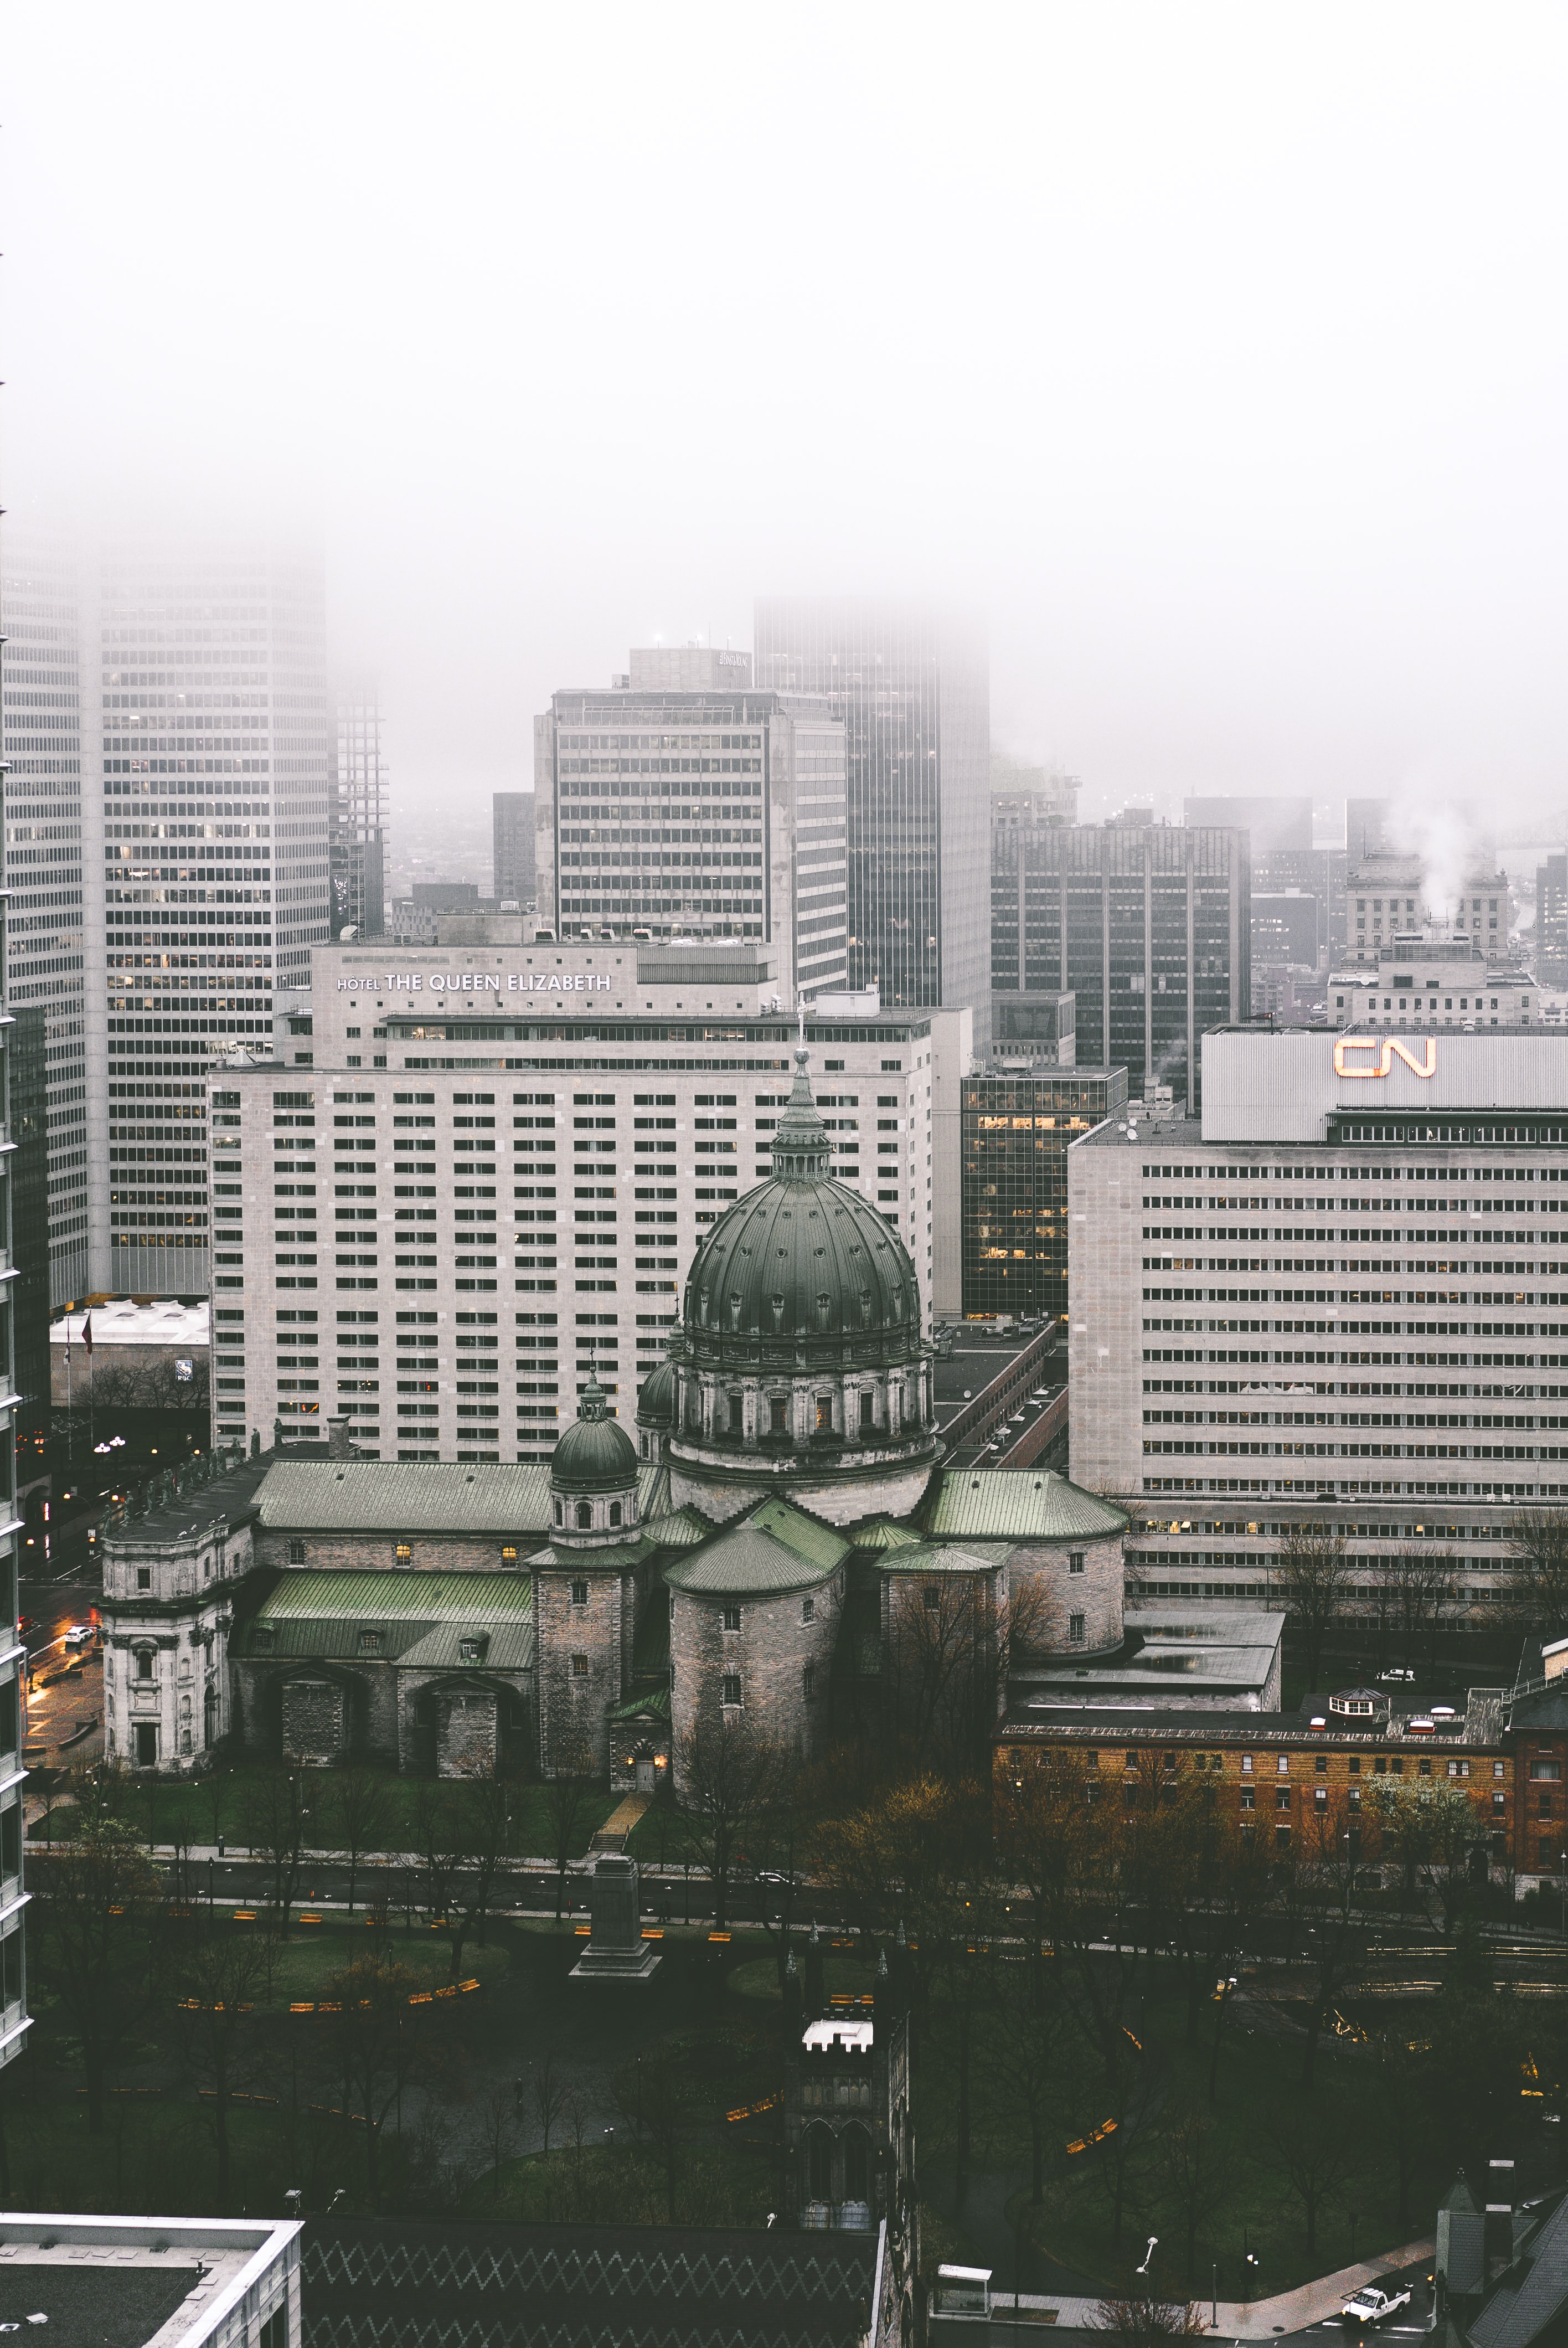 A church and high-rises in Montreal on a foggy day